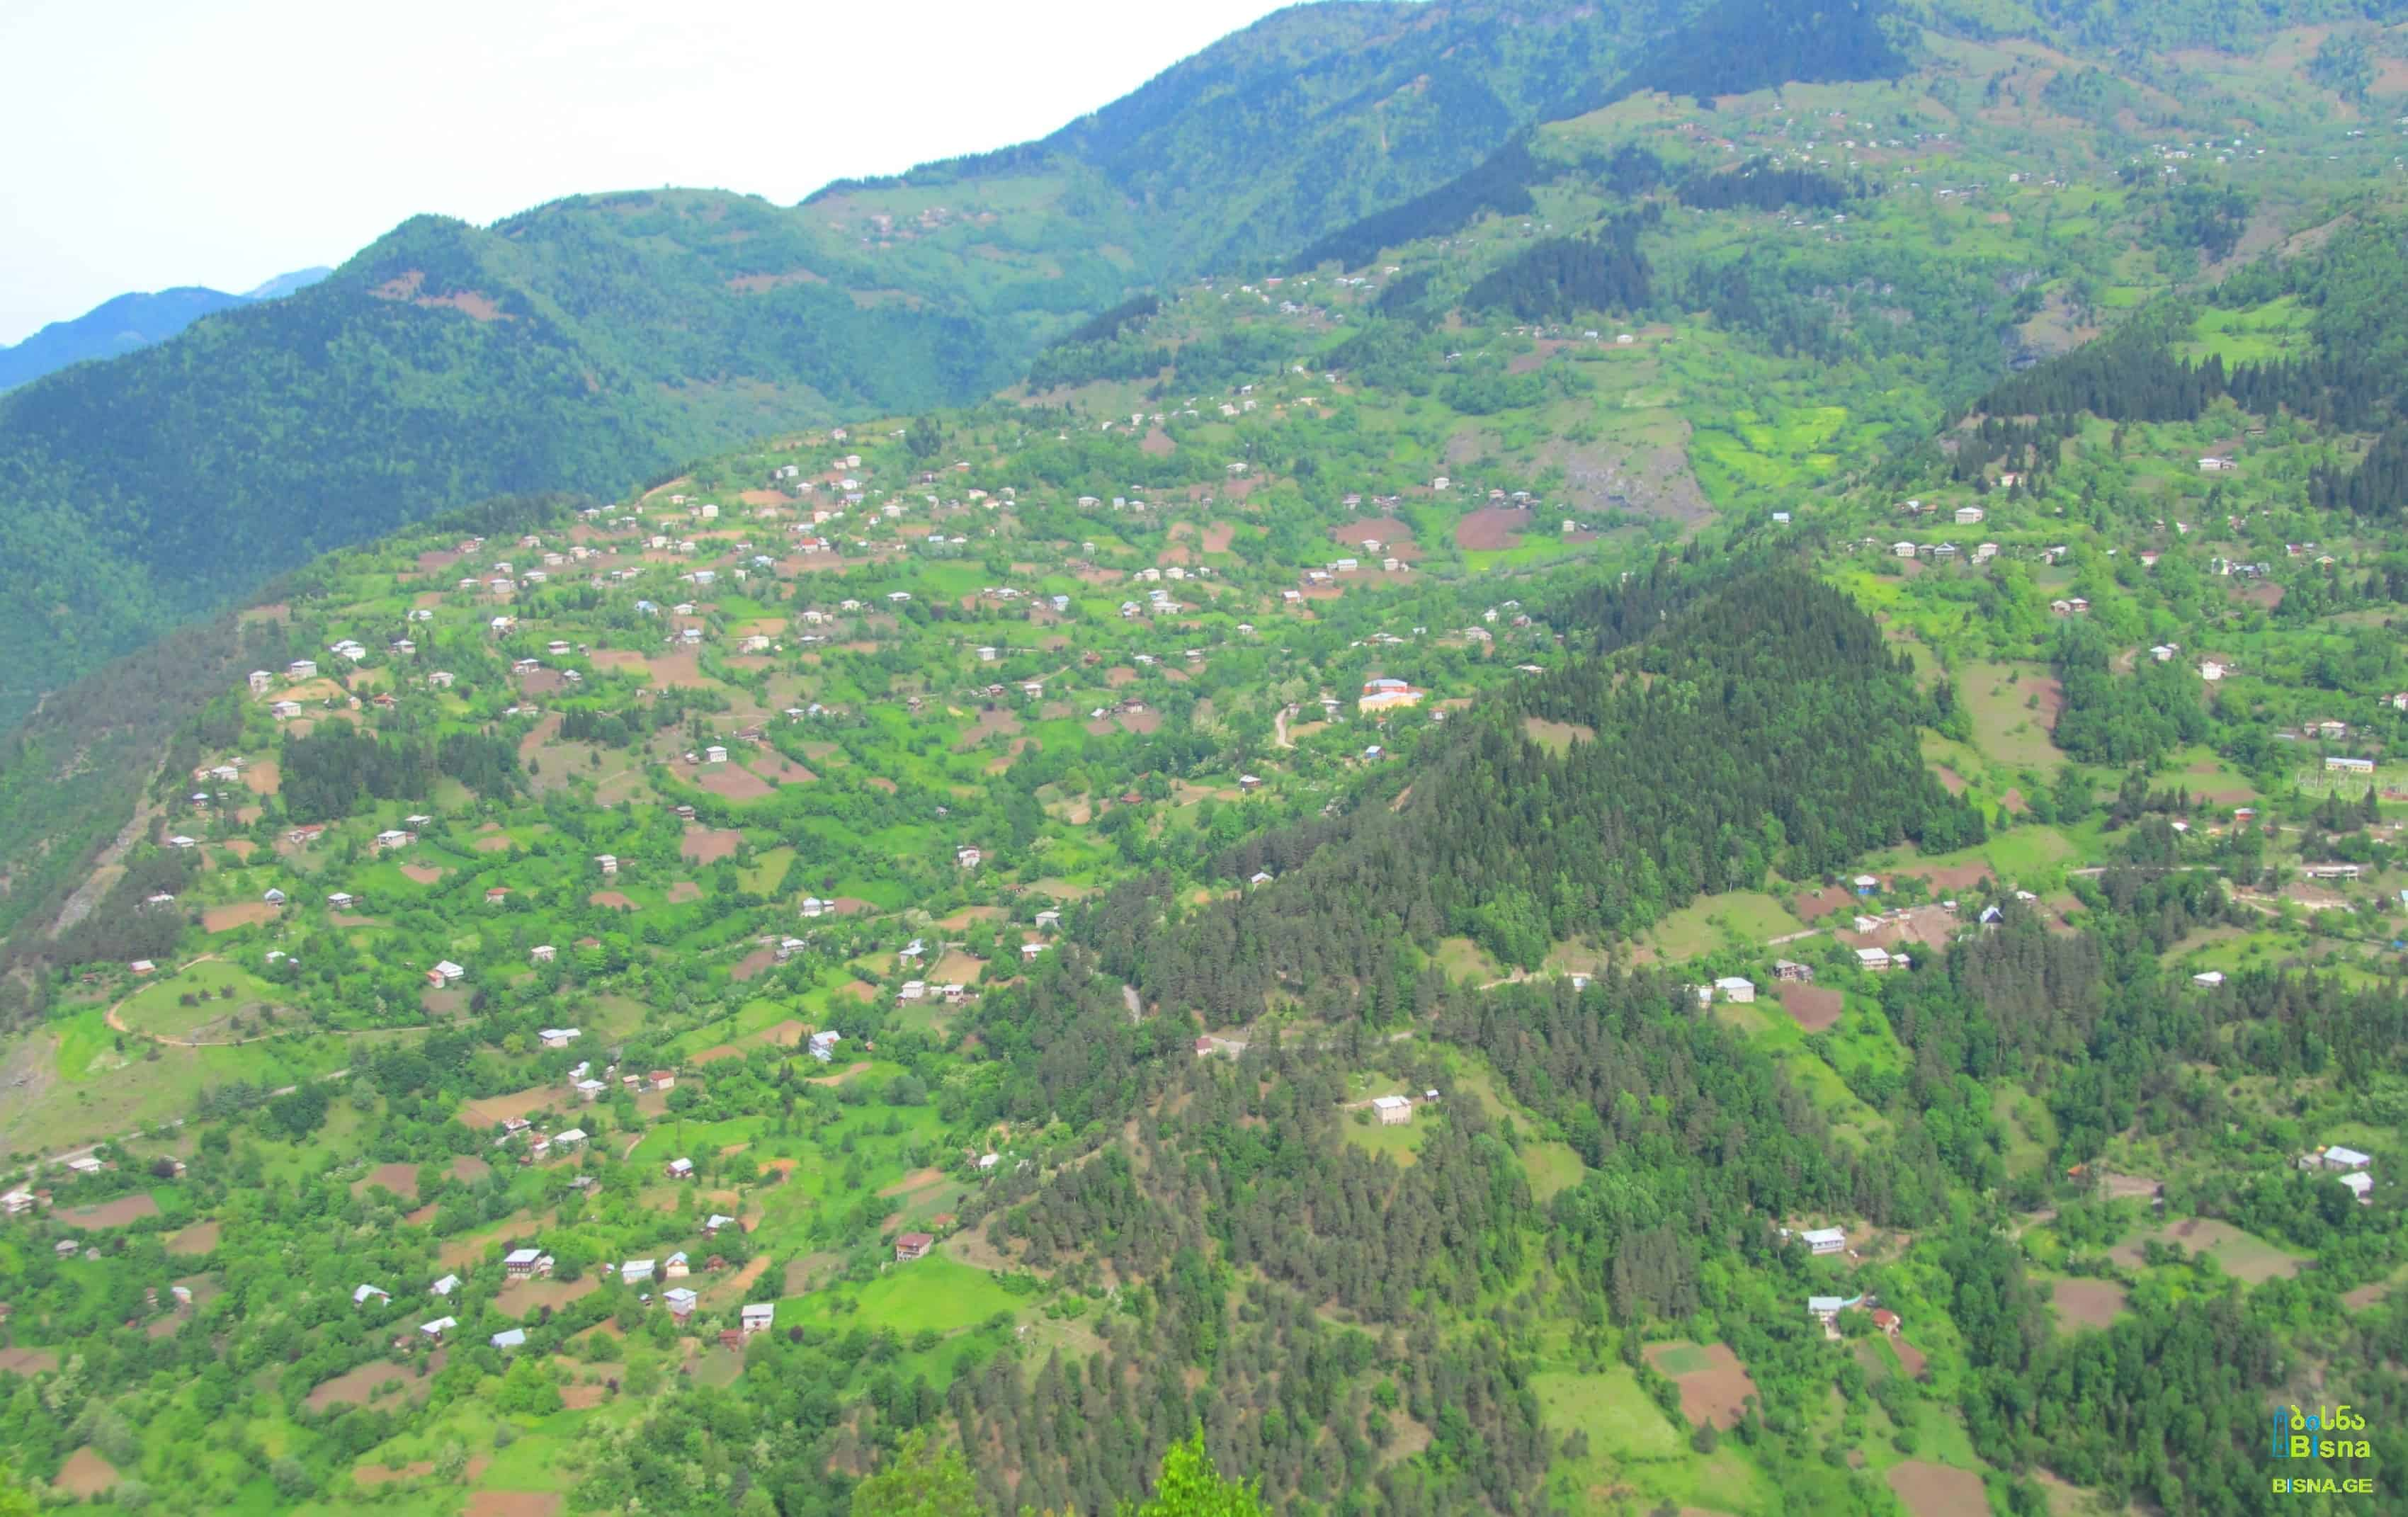 Adjara scenery with villages spread over high green slopes